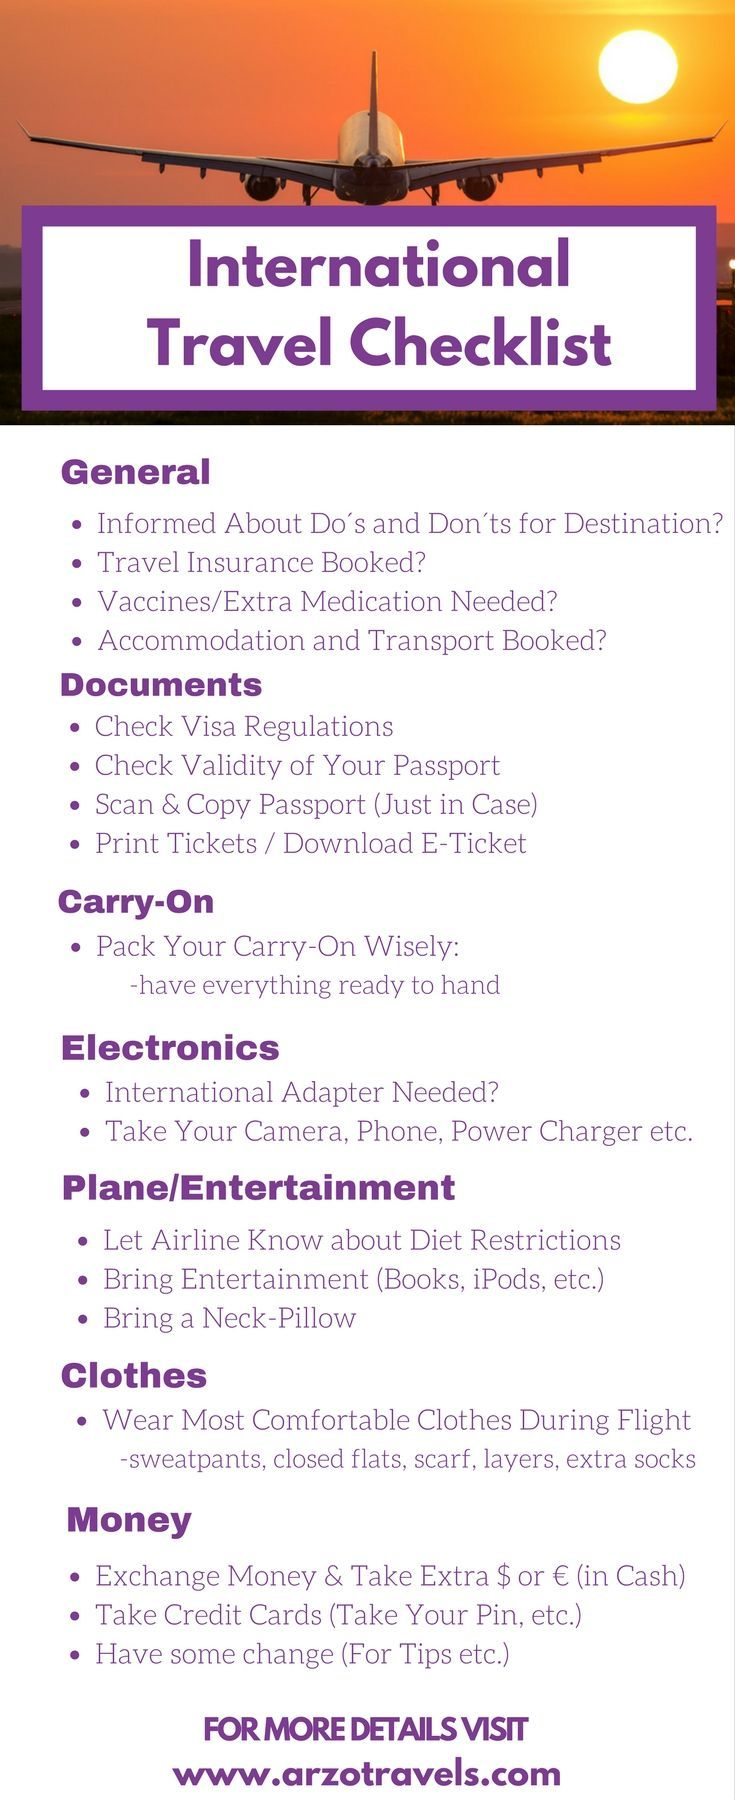 Checklist: Things to do before an international trip. 21 things you should do and consider before flying abroad: Travel advice - what to know before your vacation.